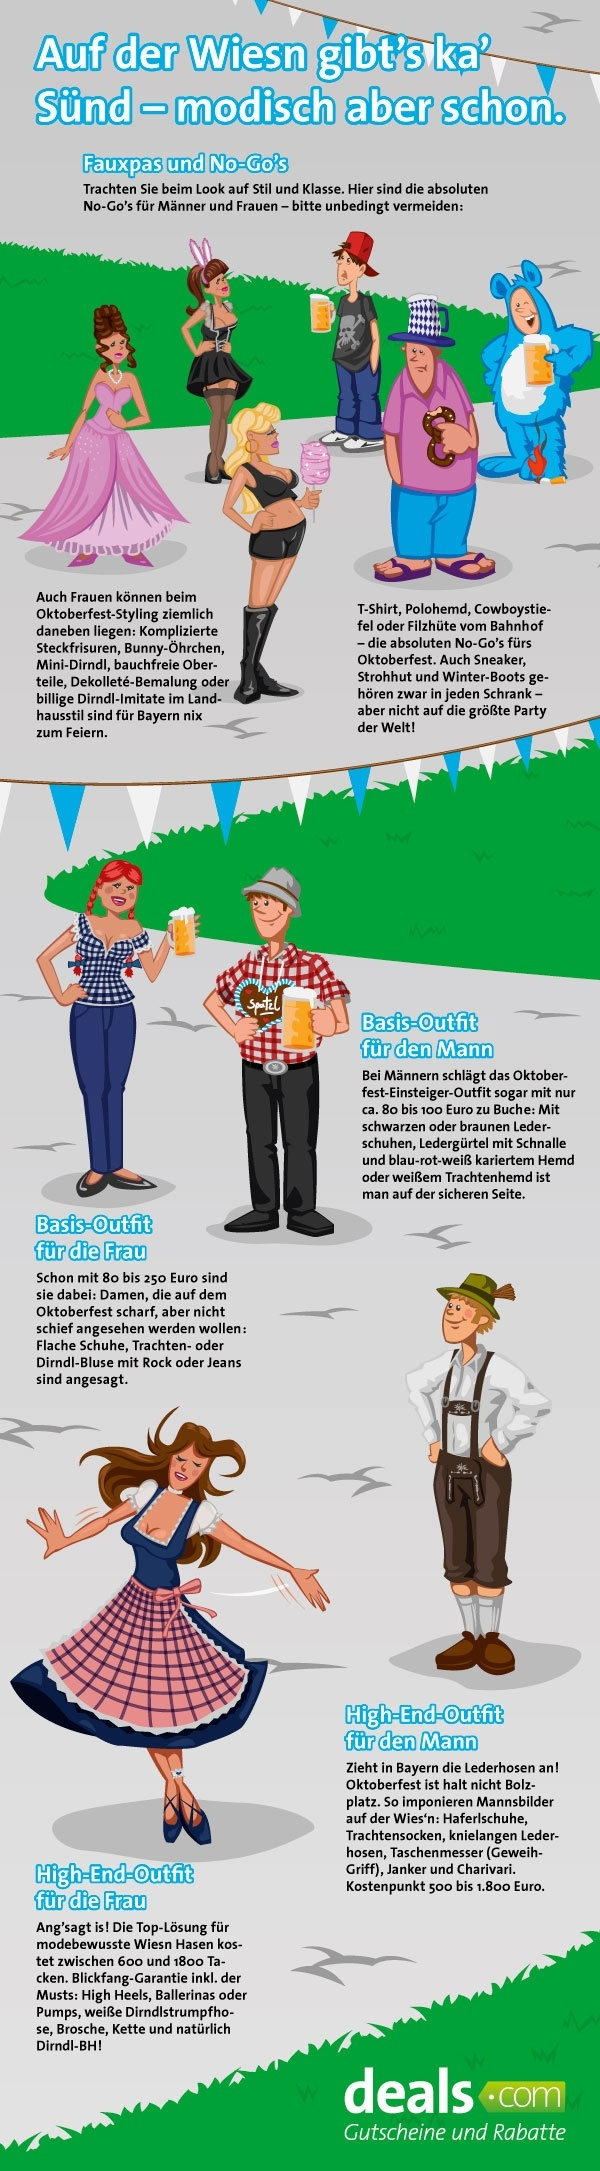 7 best OktoberFest Munich images on Pinterest | Germany, Munich and ...